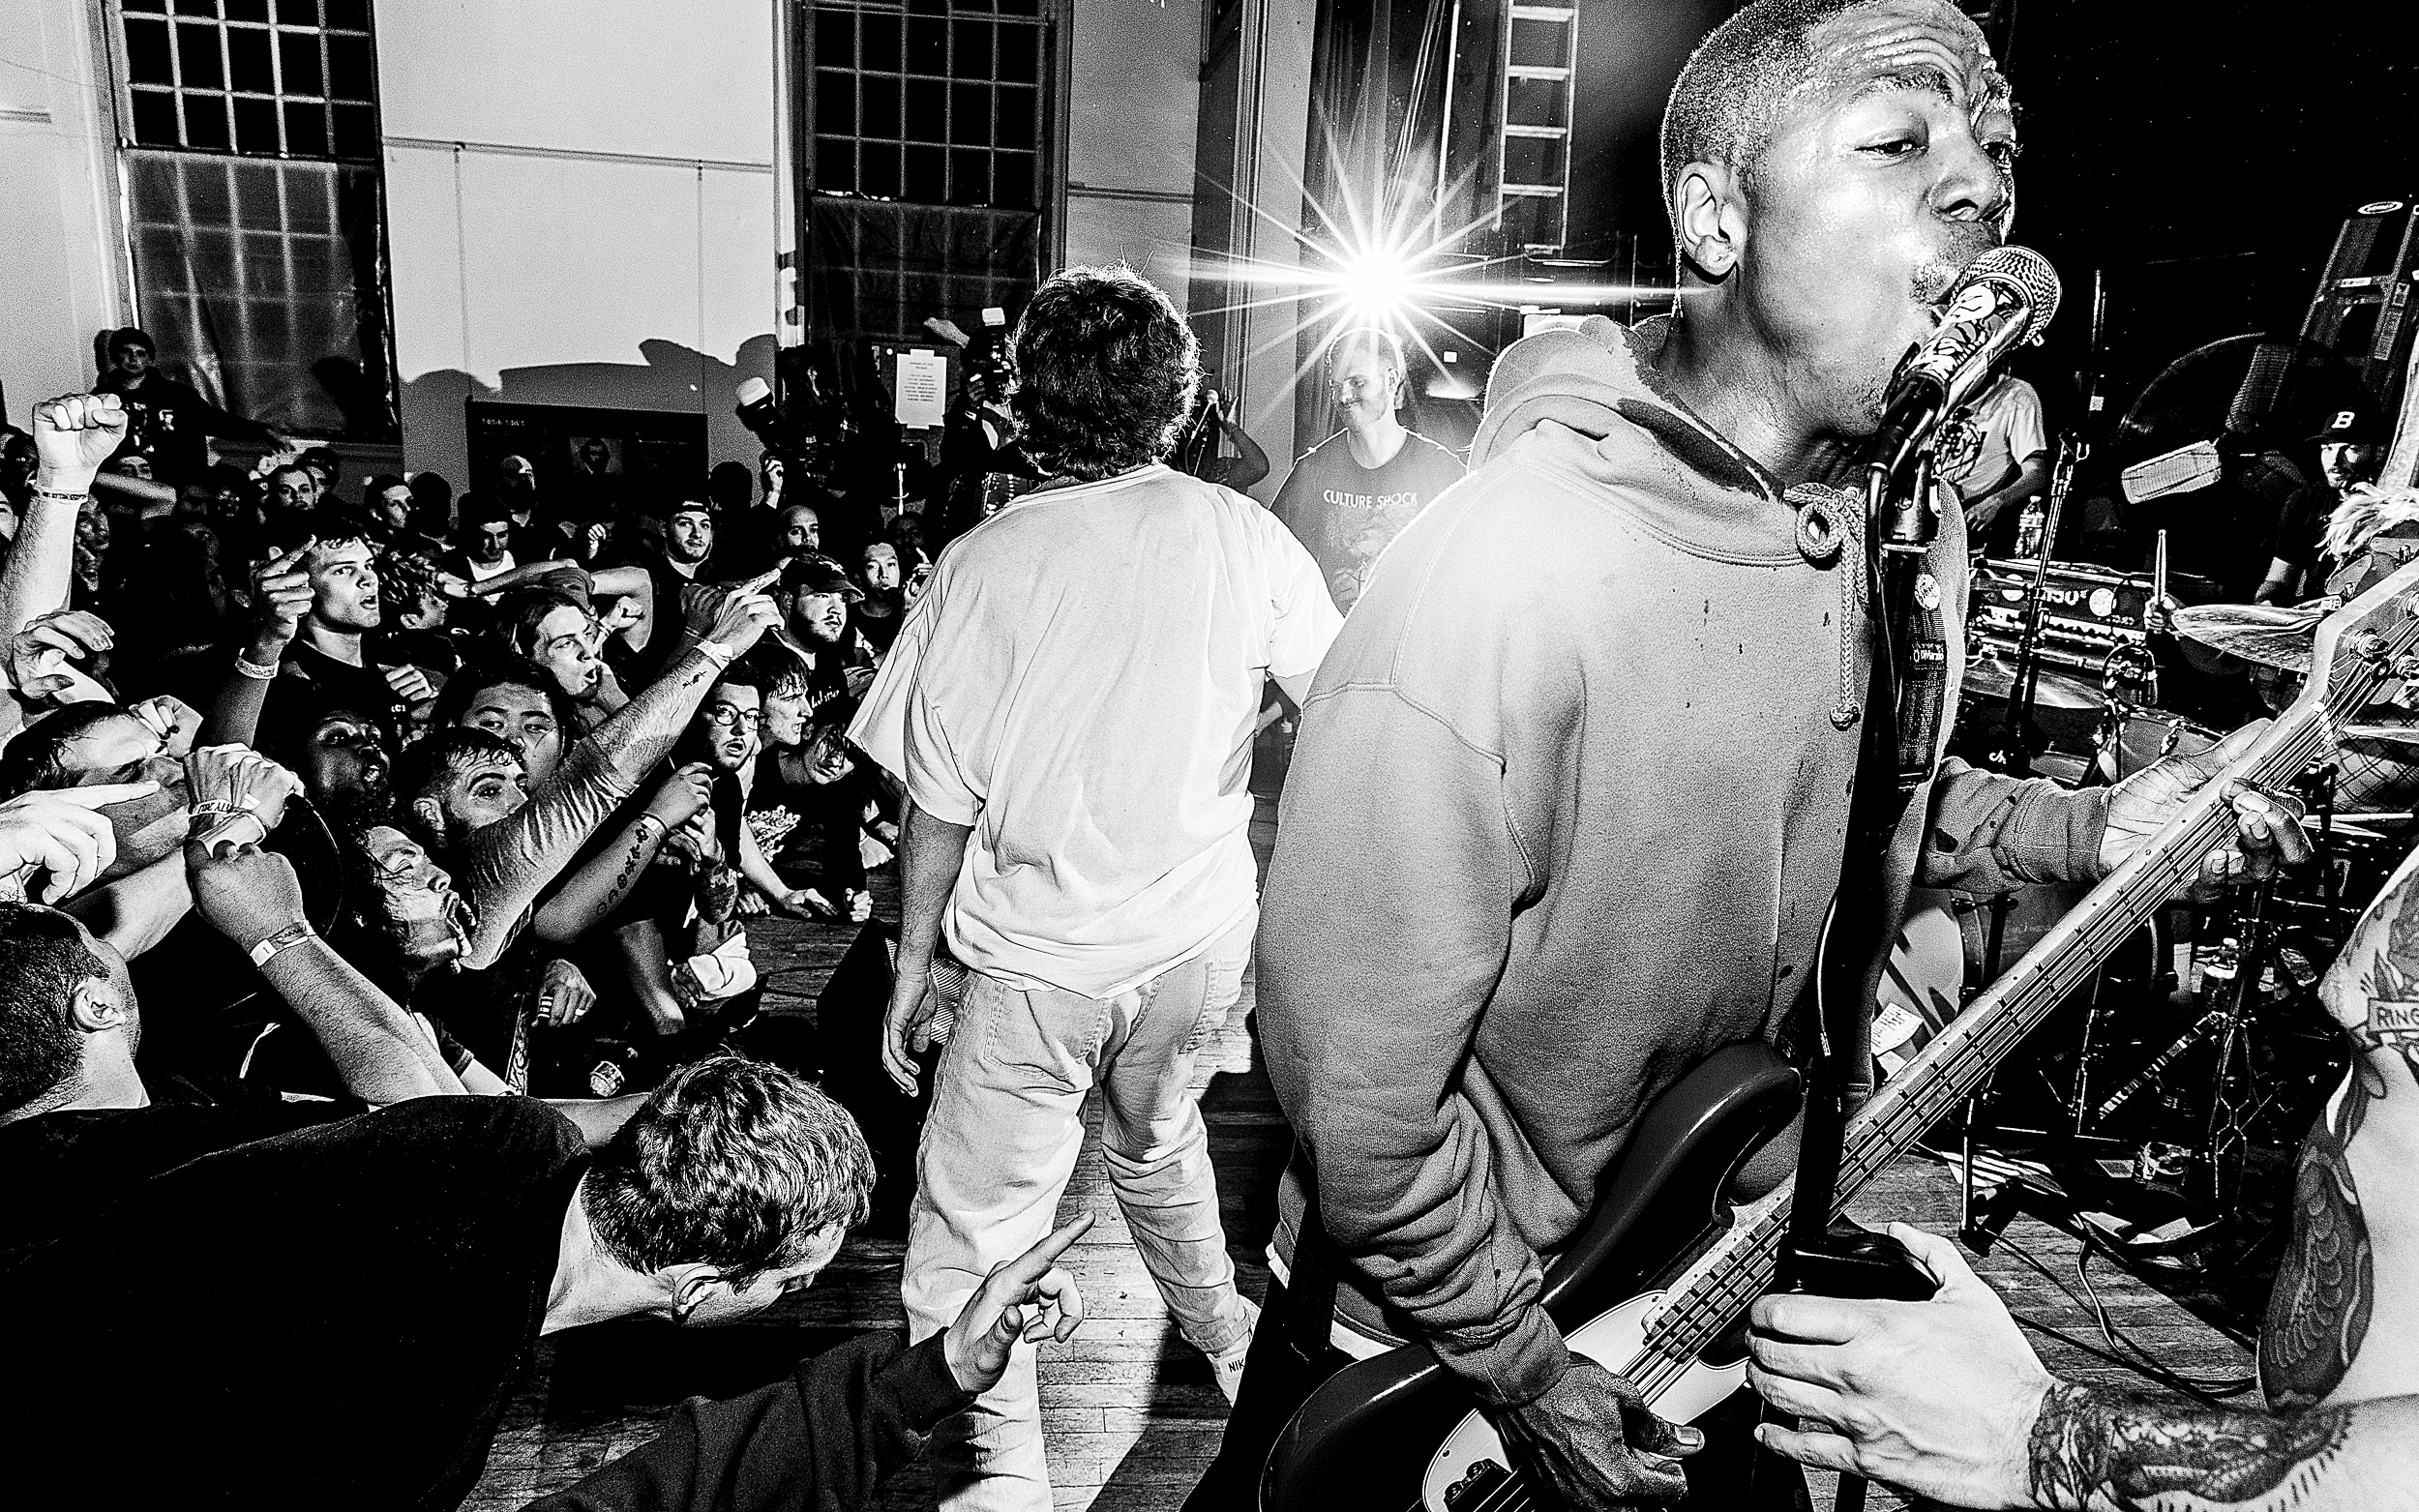 Turnstile, Red Death, Unified Right, Abuse of Power, Dress Code, Razorbumps, Bacchae - All Souls Church. Washington, DC. April 5, 2018